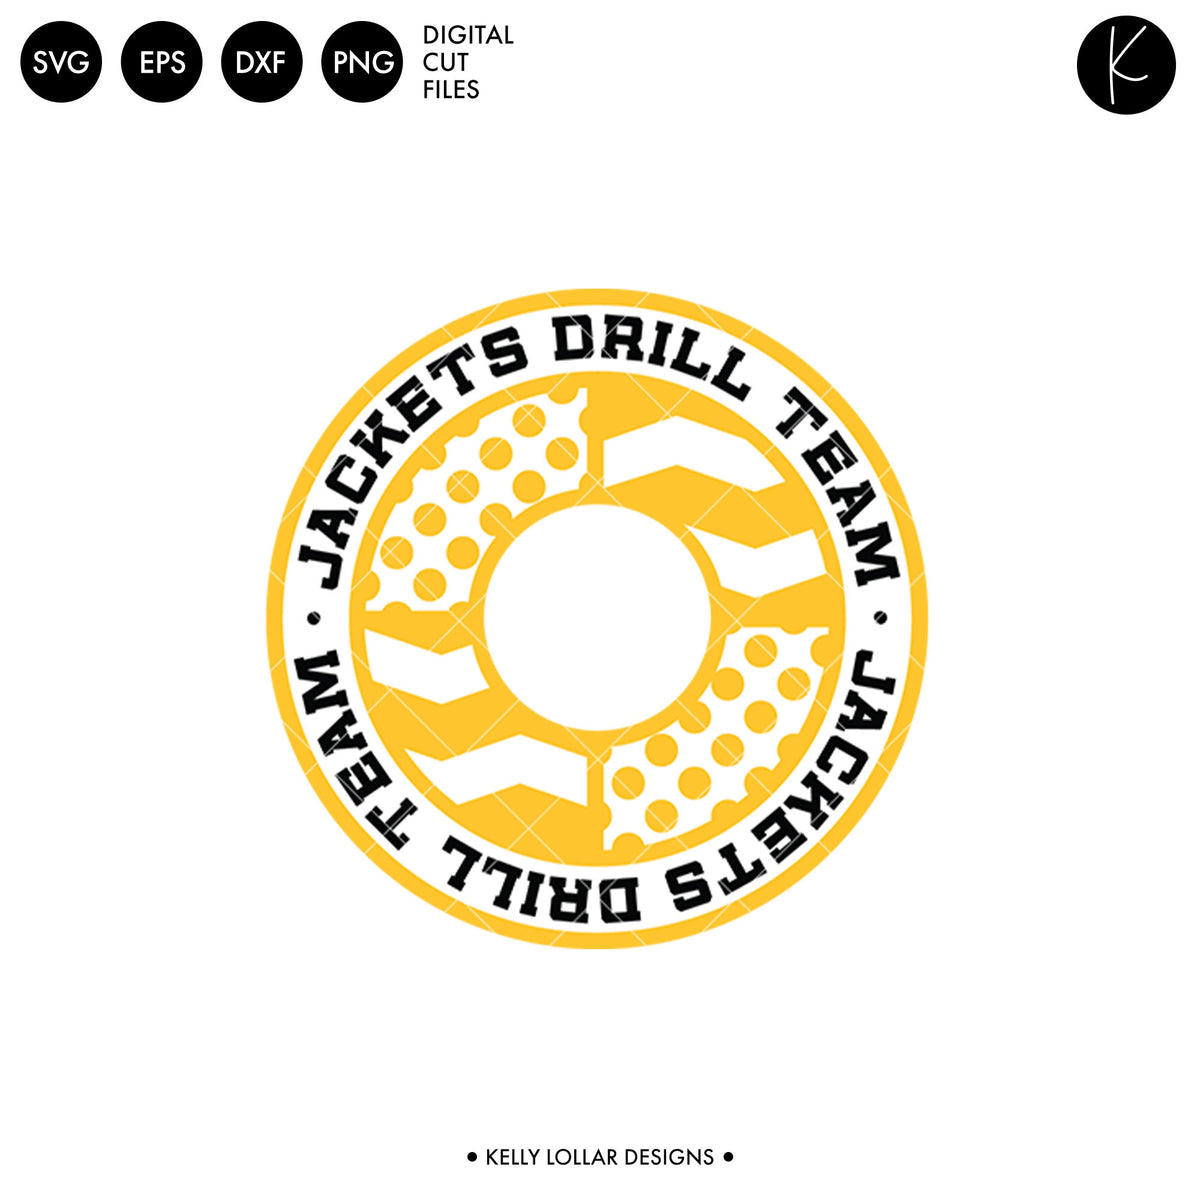 Jackets Drill Bundle | SVG DXF EPS PNG Cut Files